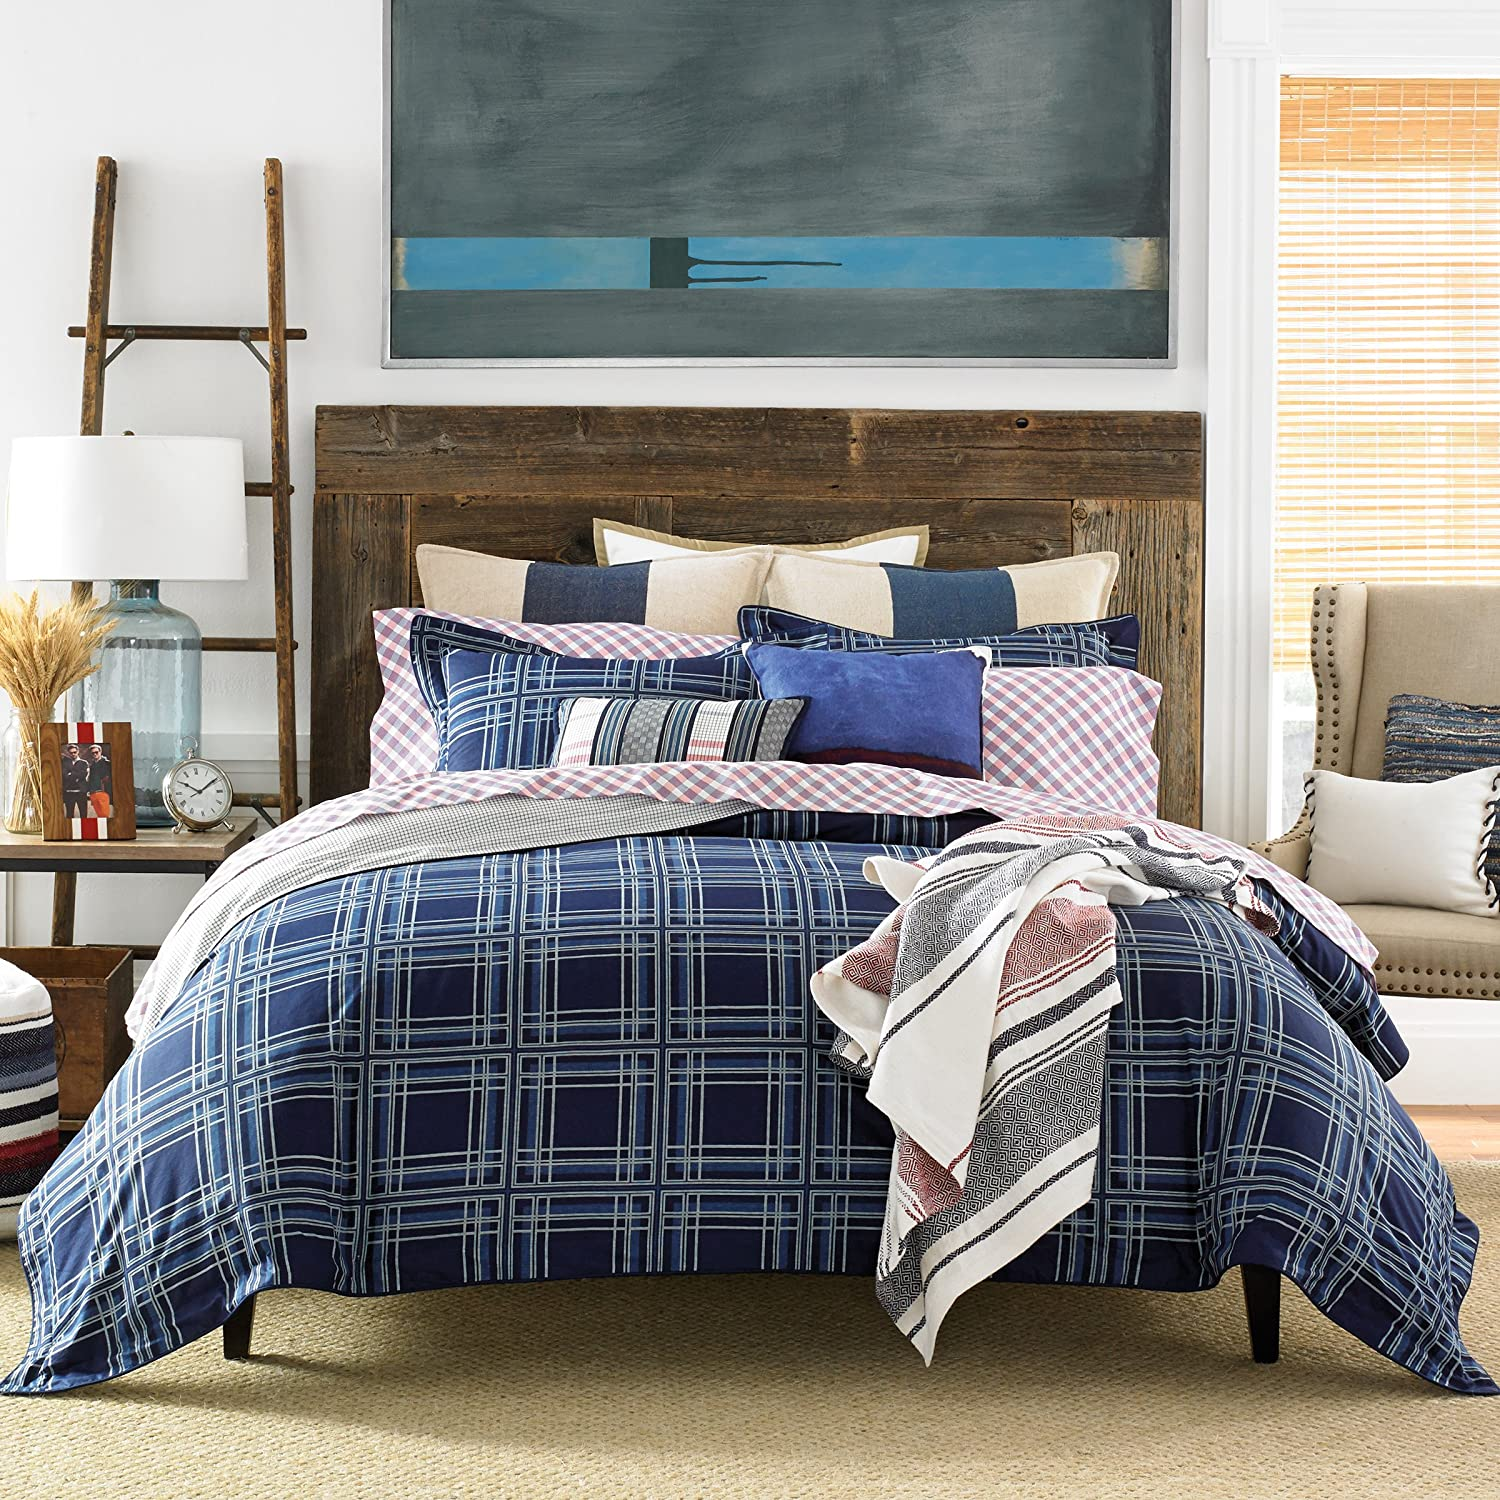 Tommy Hilfiger Farmhouse Plaid forter Set King Blue Amazon